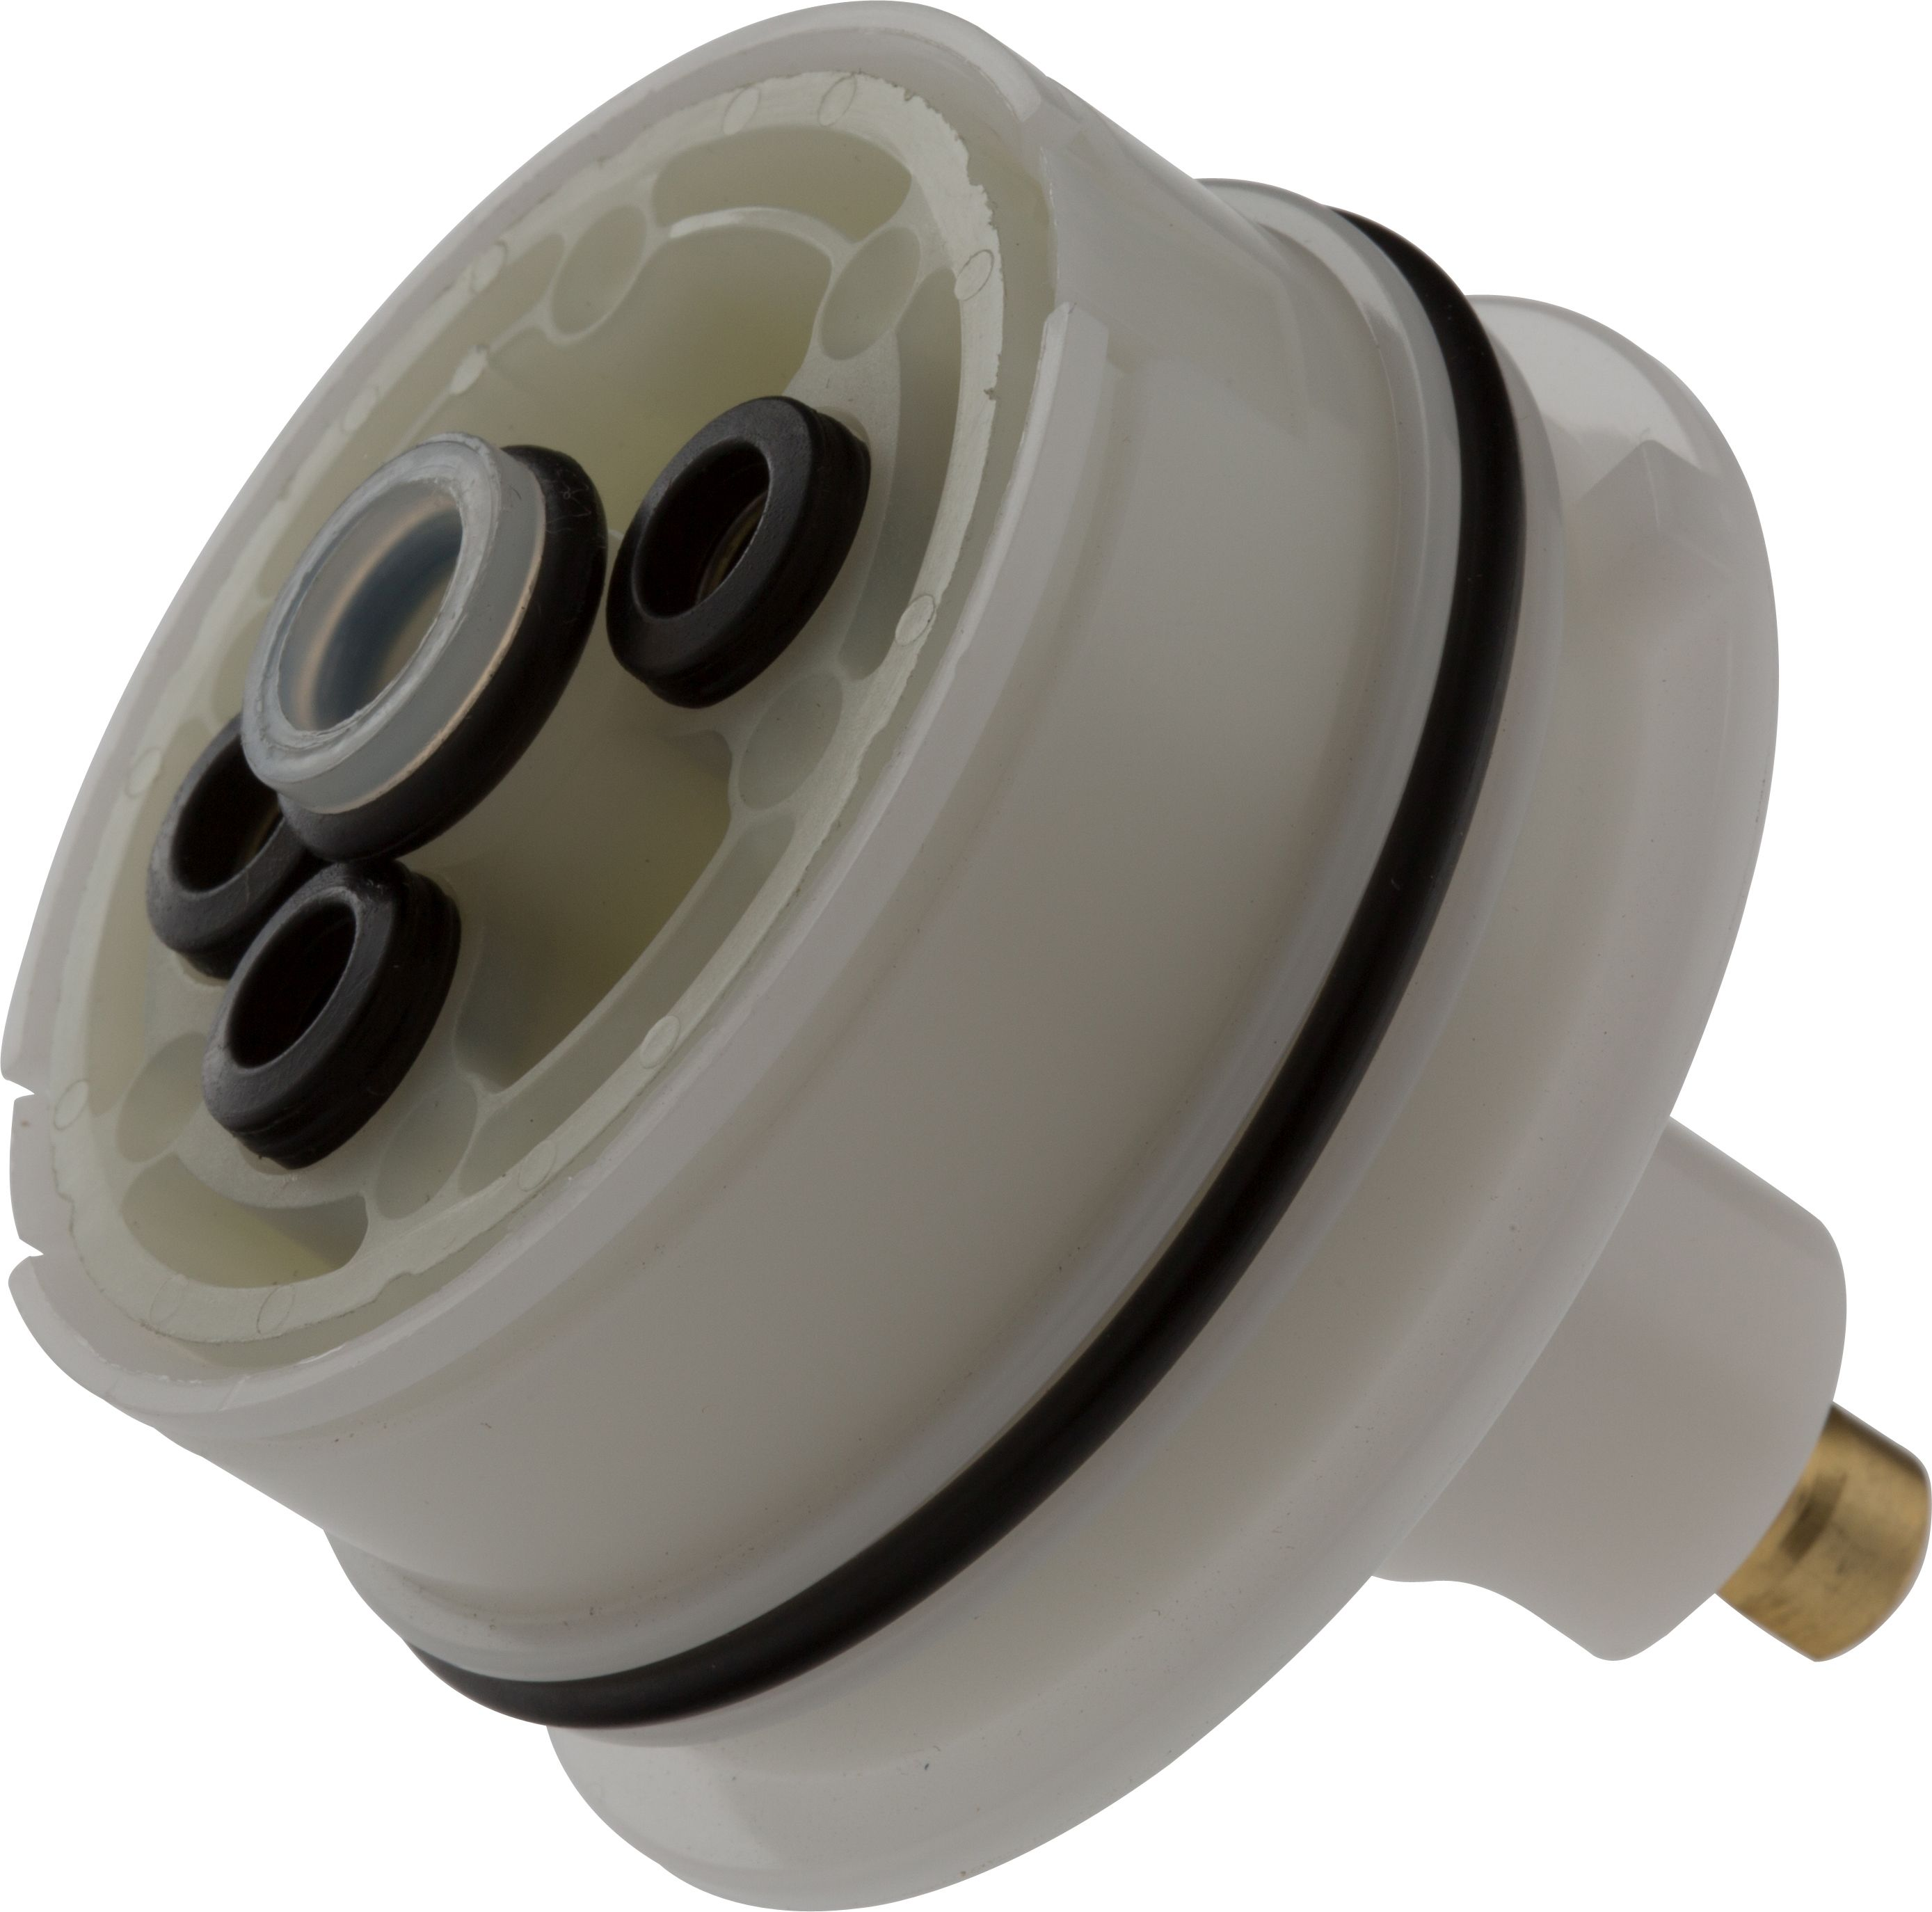 Delta Rp42410 N A Cartridge Assembly And Adapter For R11000 Valves For Special Applications May Be Required To Replace Delta R11600 Valve Faucet Com